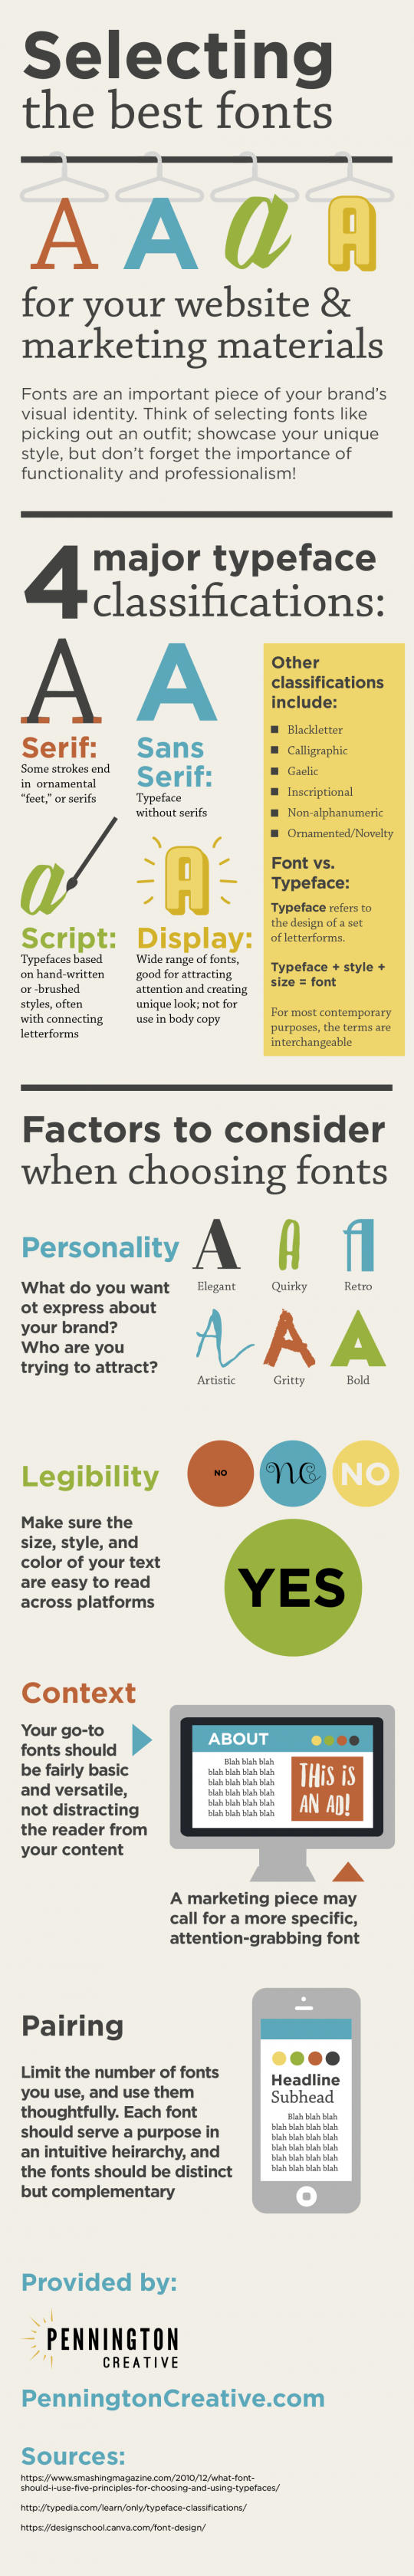 Selecting the Best Fonts for Your Website and Marketing Materials